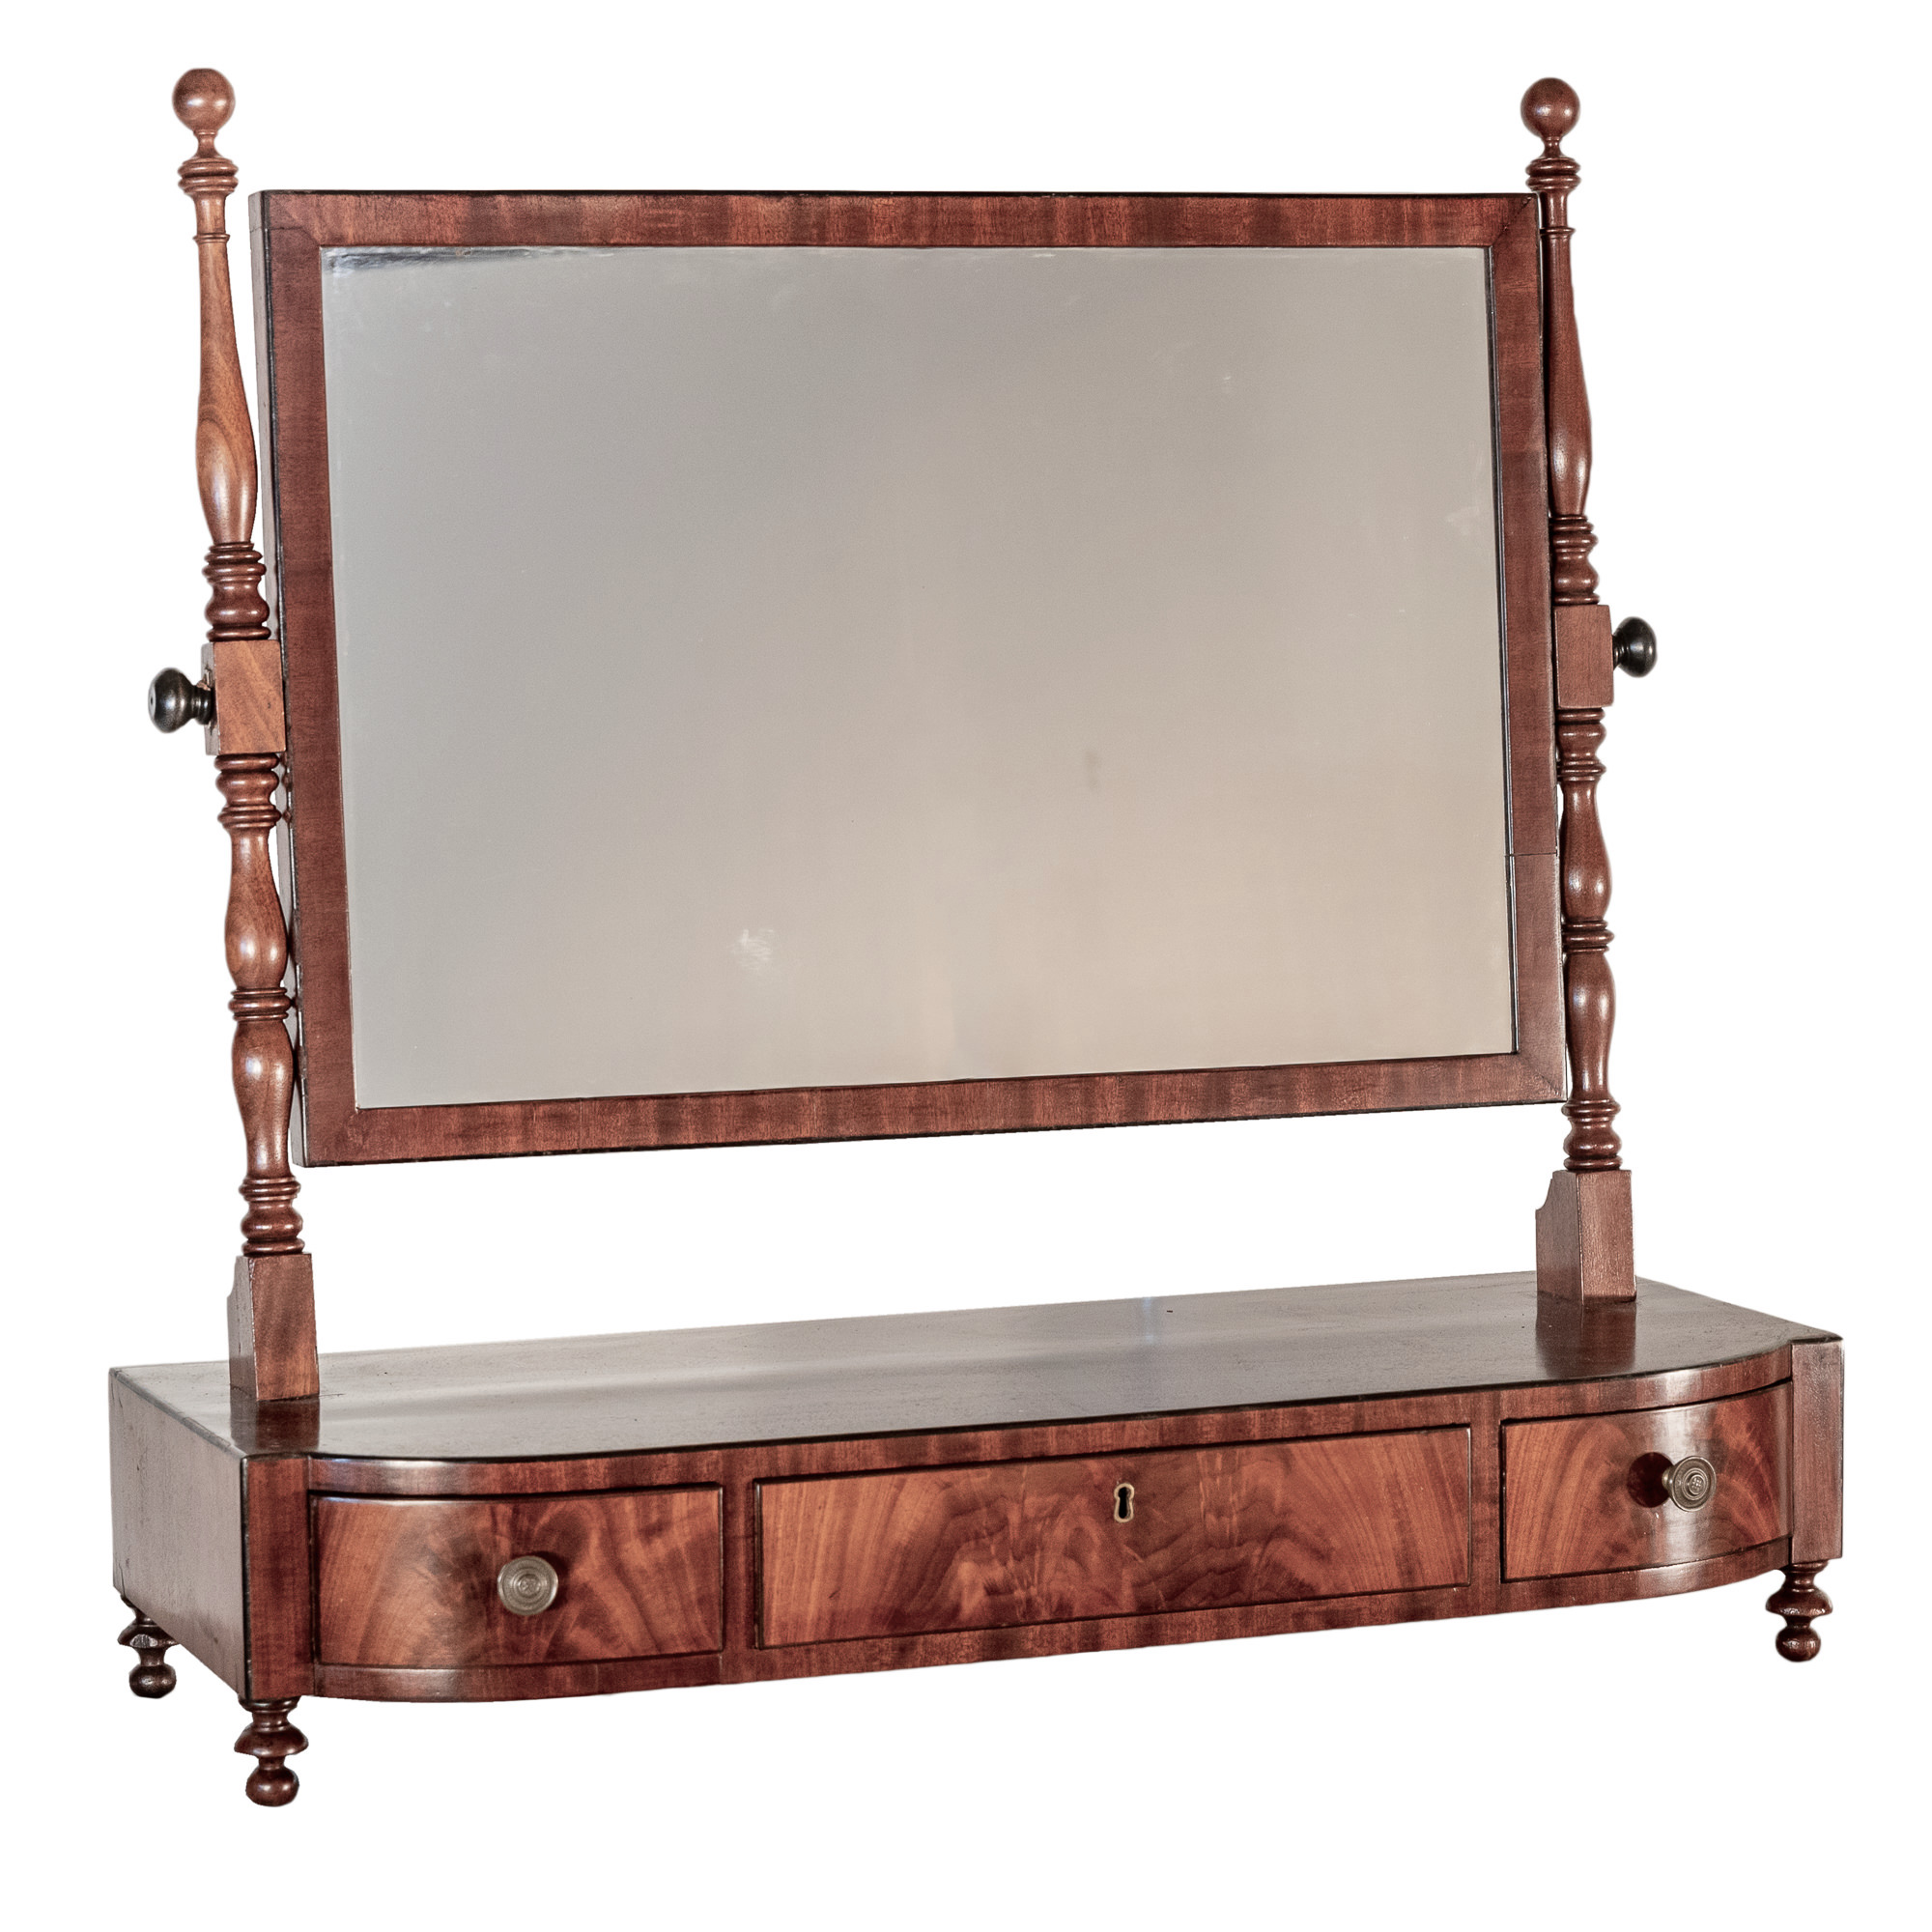 'George III Ebony Strung Mahogany Toilet Mirror with Three Drawers Early 19th Century'